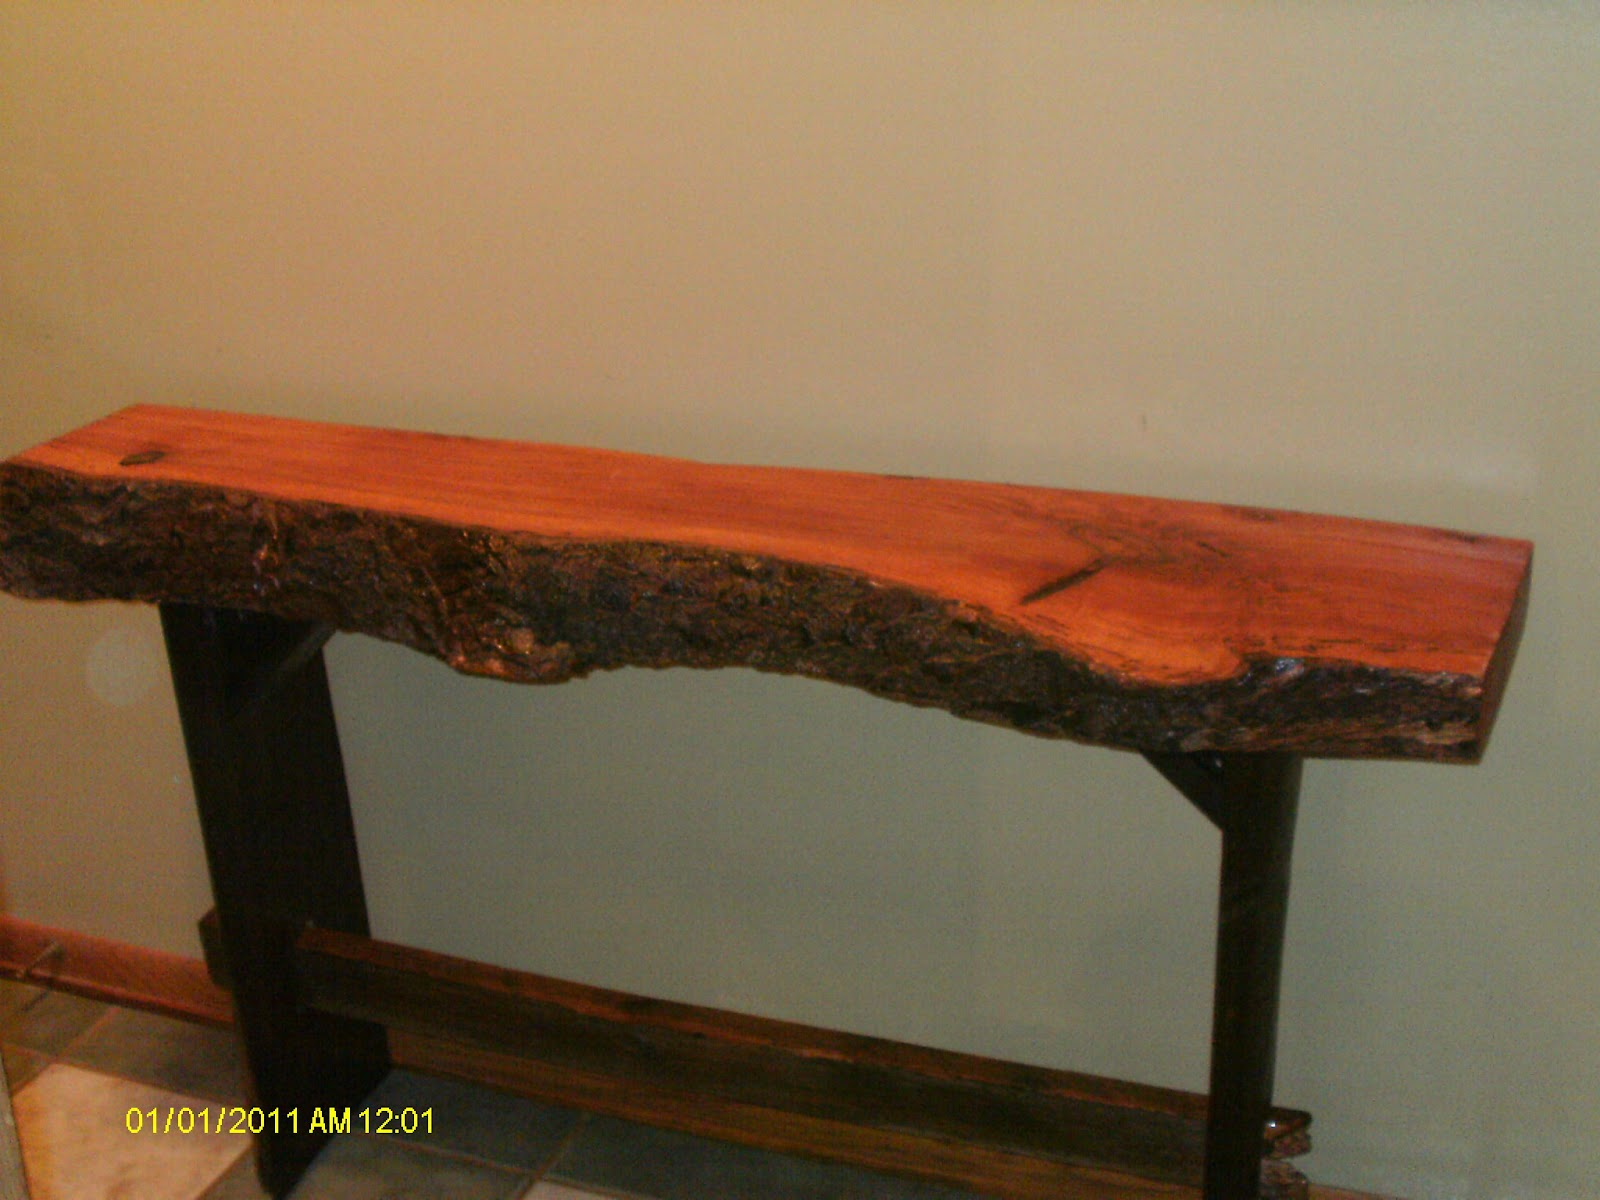 Long Tall Sofa Tables Cindy Crawford Home Reviews Handmade Rustic And Log Furniture 4 39 X 32 Quot 10